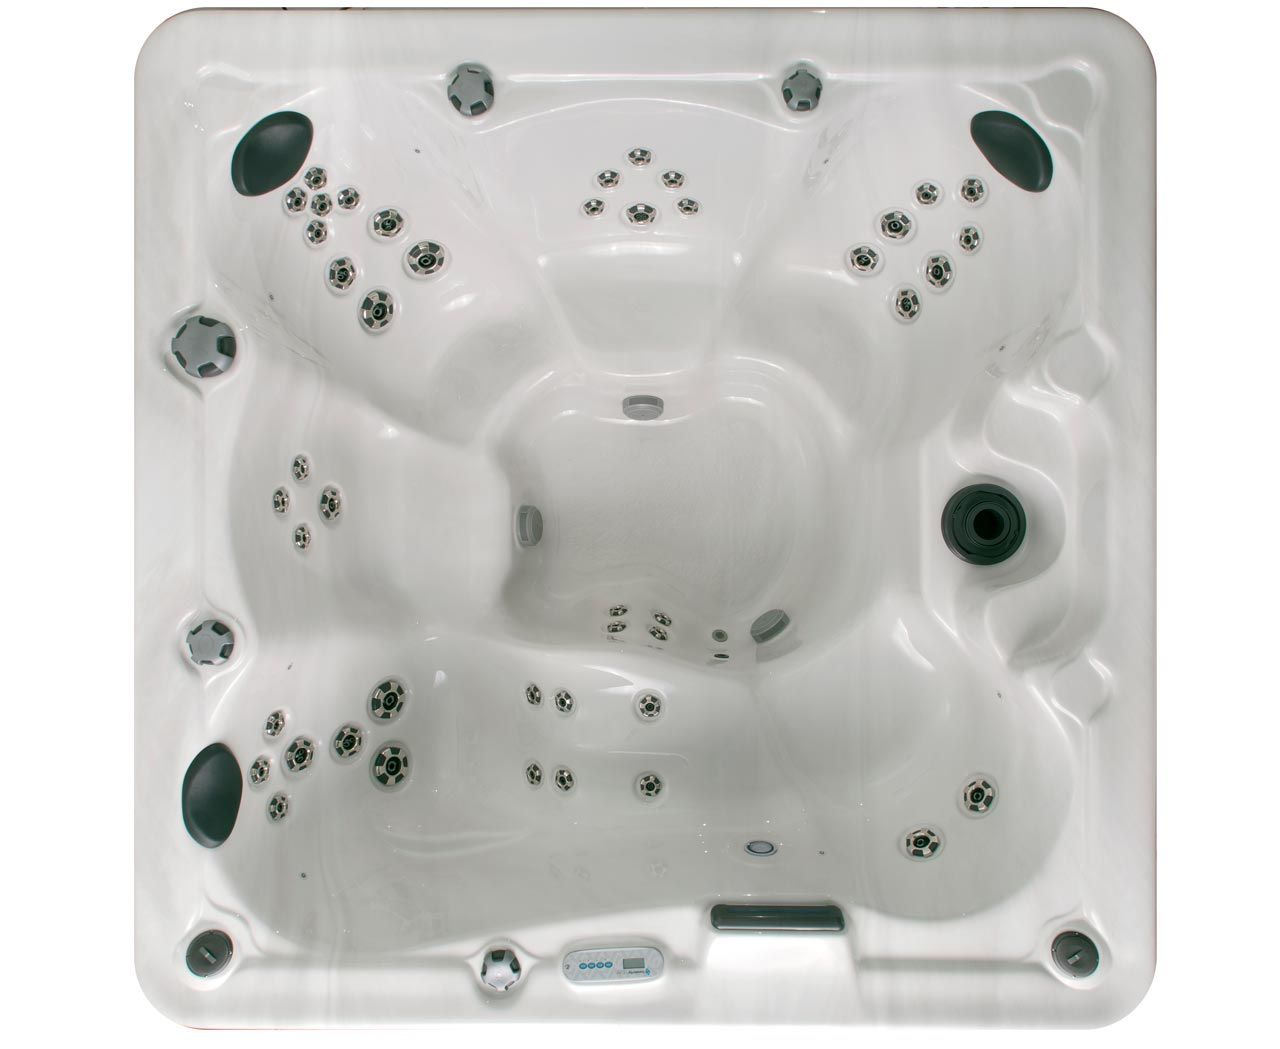 celebrity series hot tubs best in backyards rh bestinbackyards com marquis 545 hot tub manual marquis 660 hot tub manual